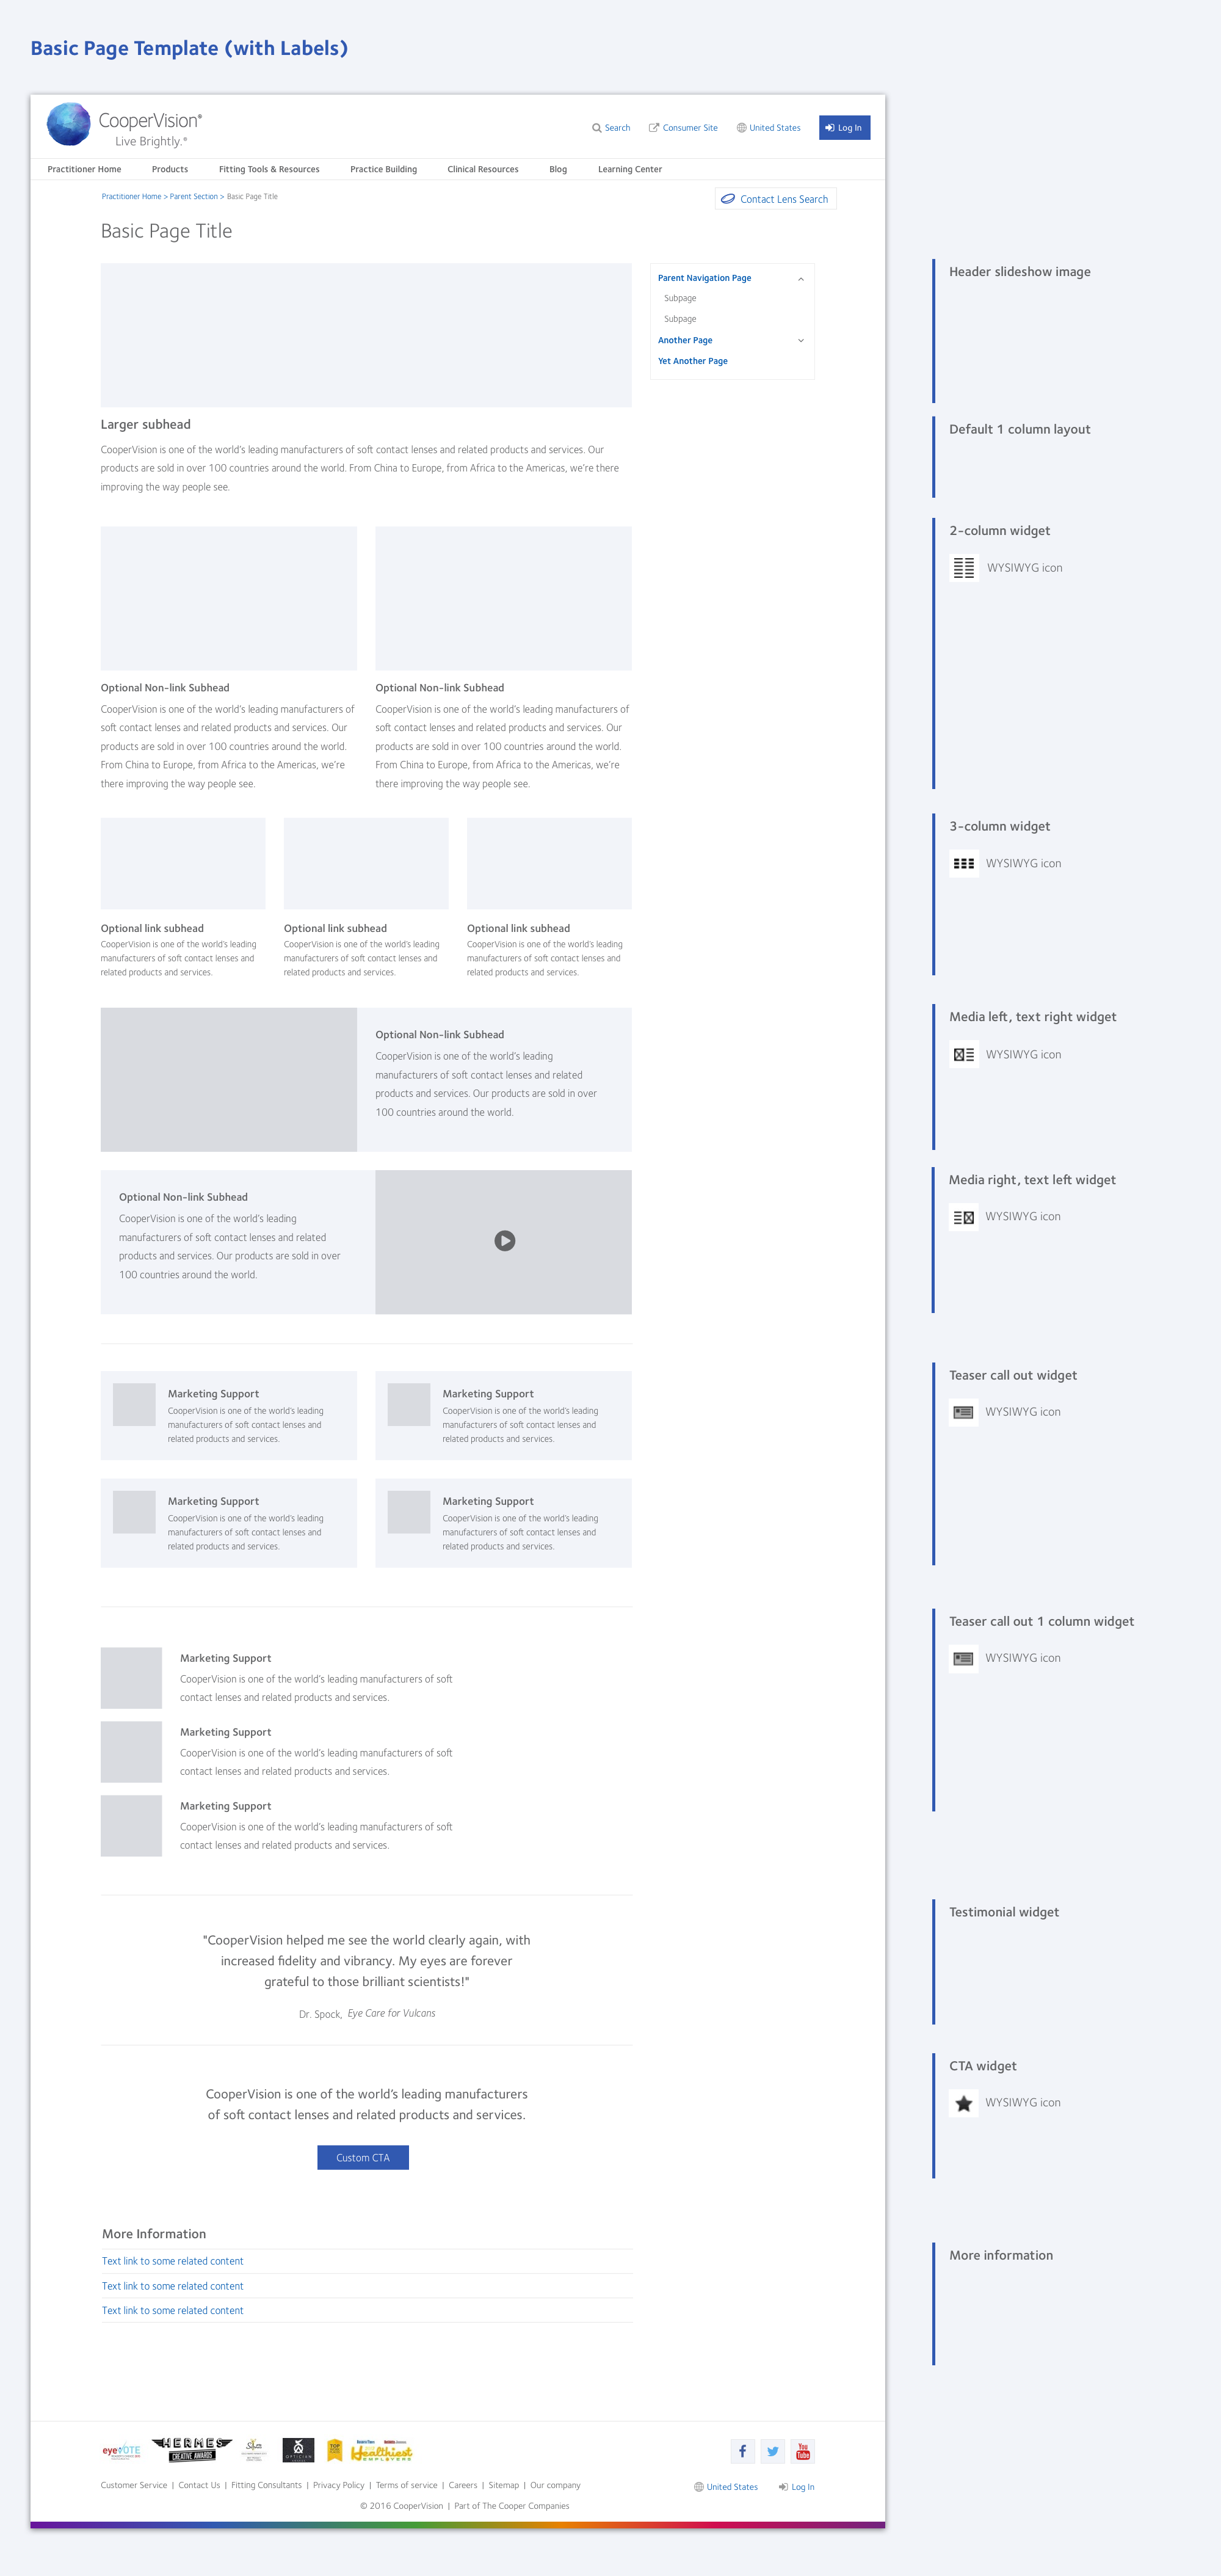 Basic Page Template - Annotated 1x .png